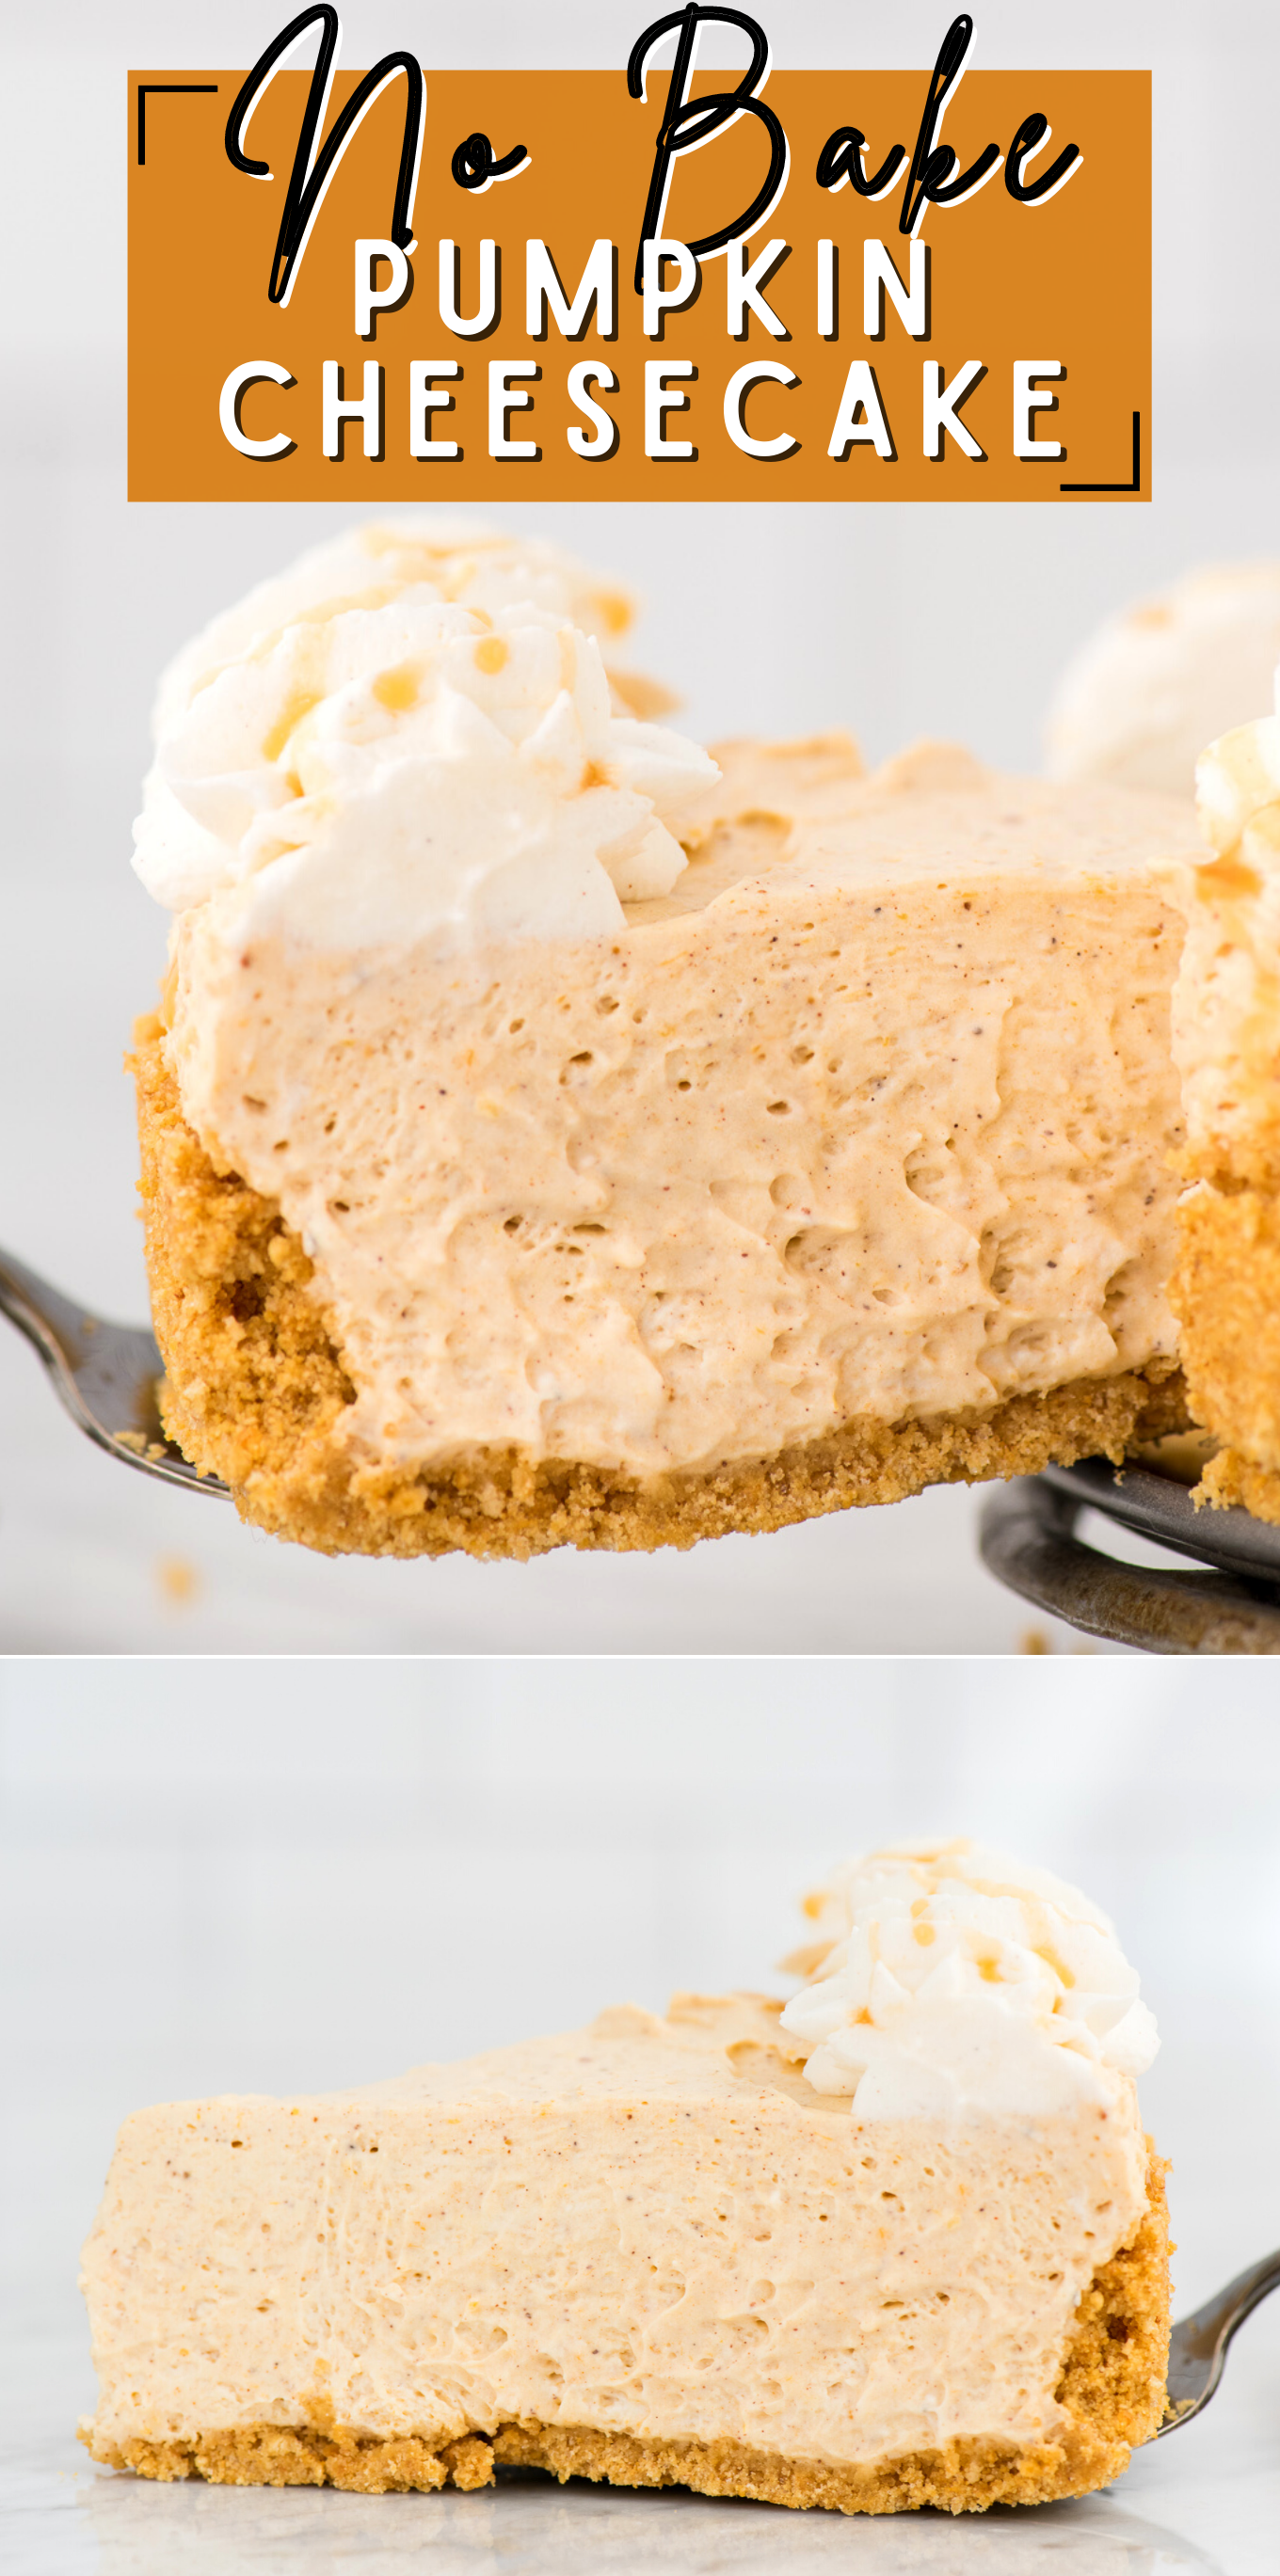 Learn How To Make No Bake Pumpkin Cheesecake Without Condensed Milk Or Gelatin This No Bake Cheesecake Is In 2020 Sweet Recipes Desserts Baked Pumpkin Dessert Recipes